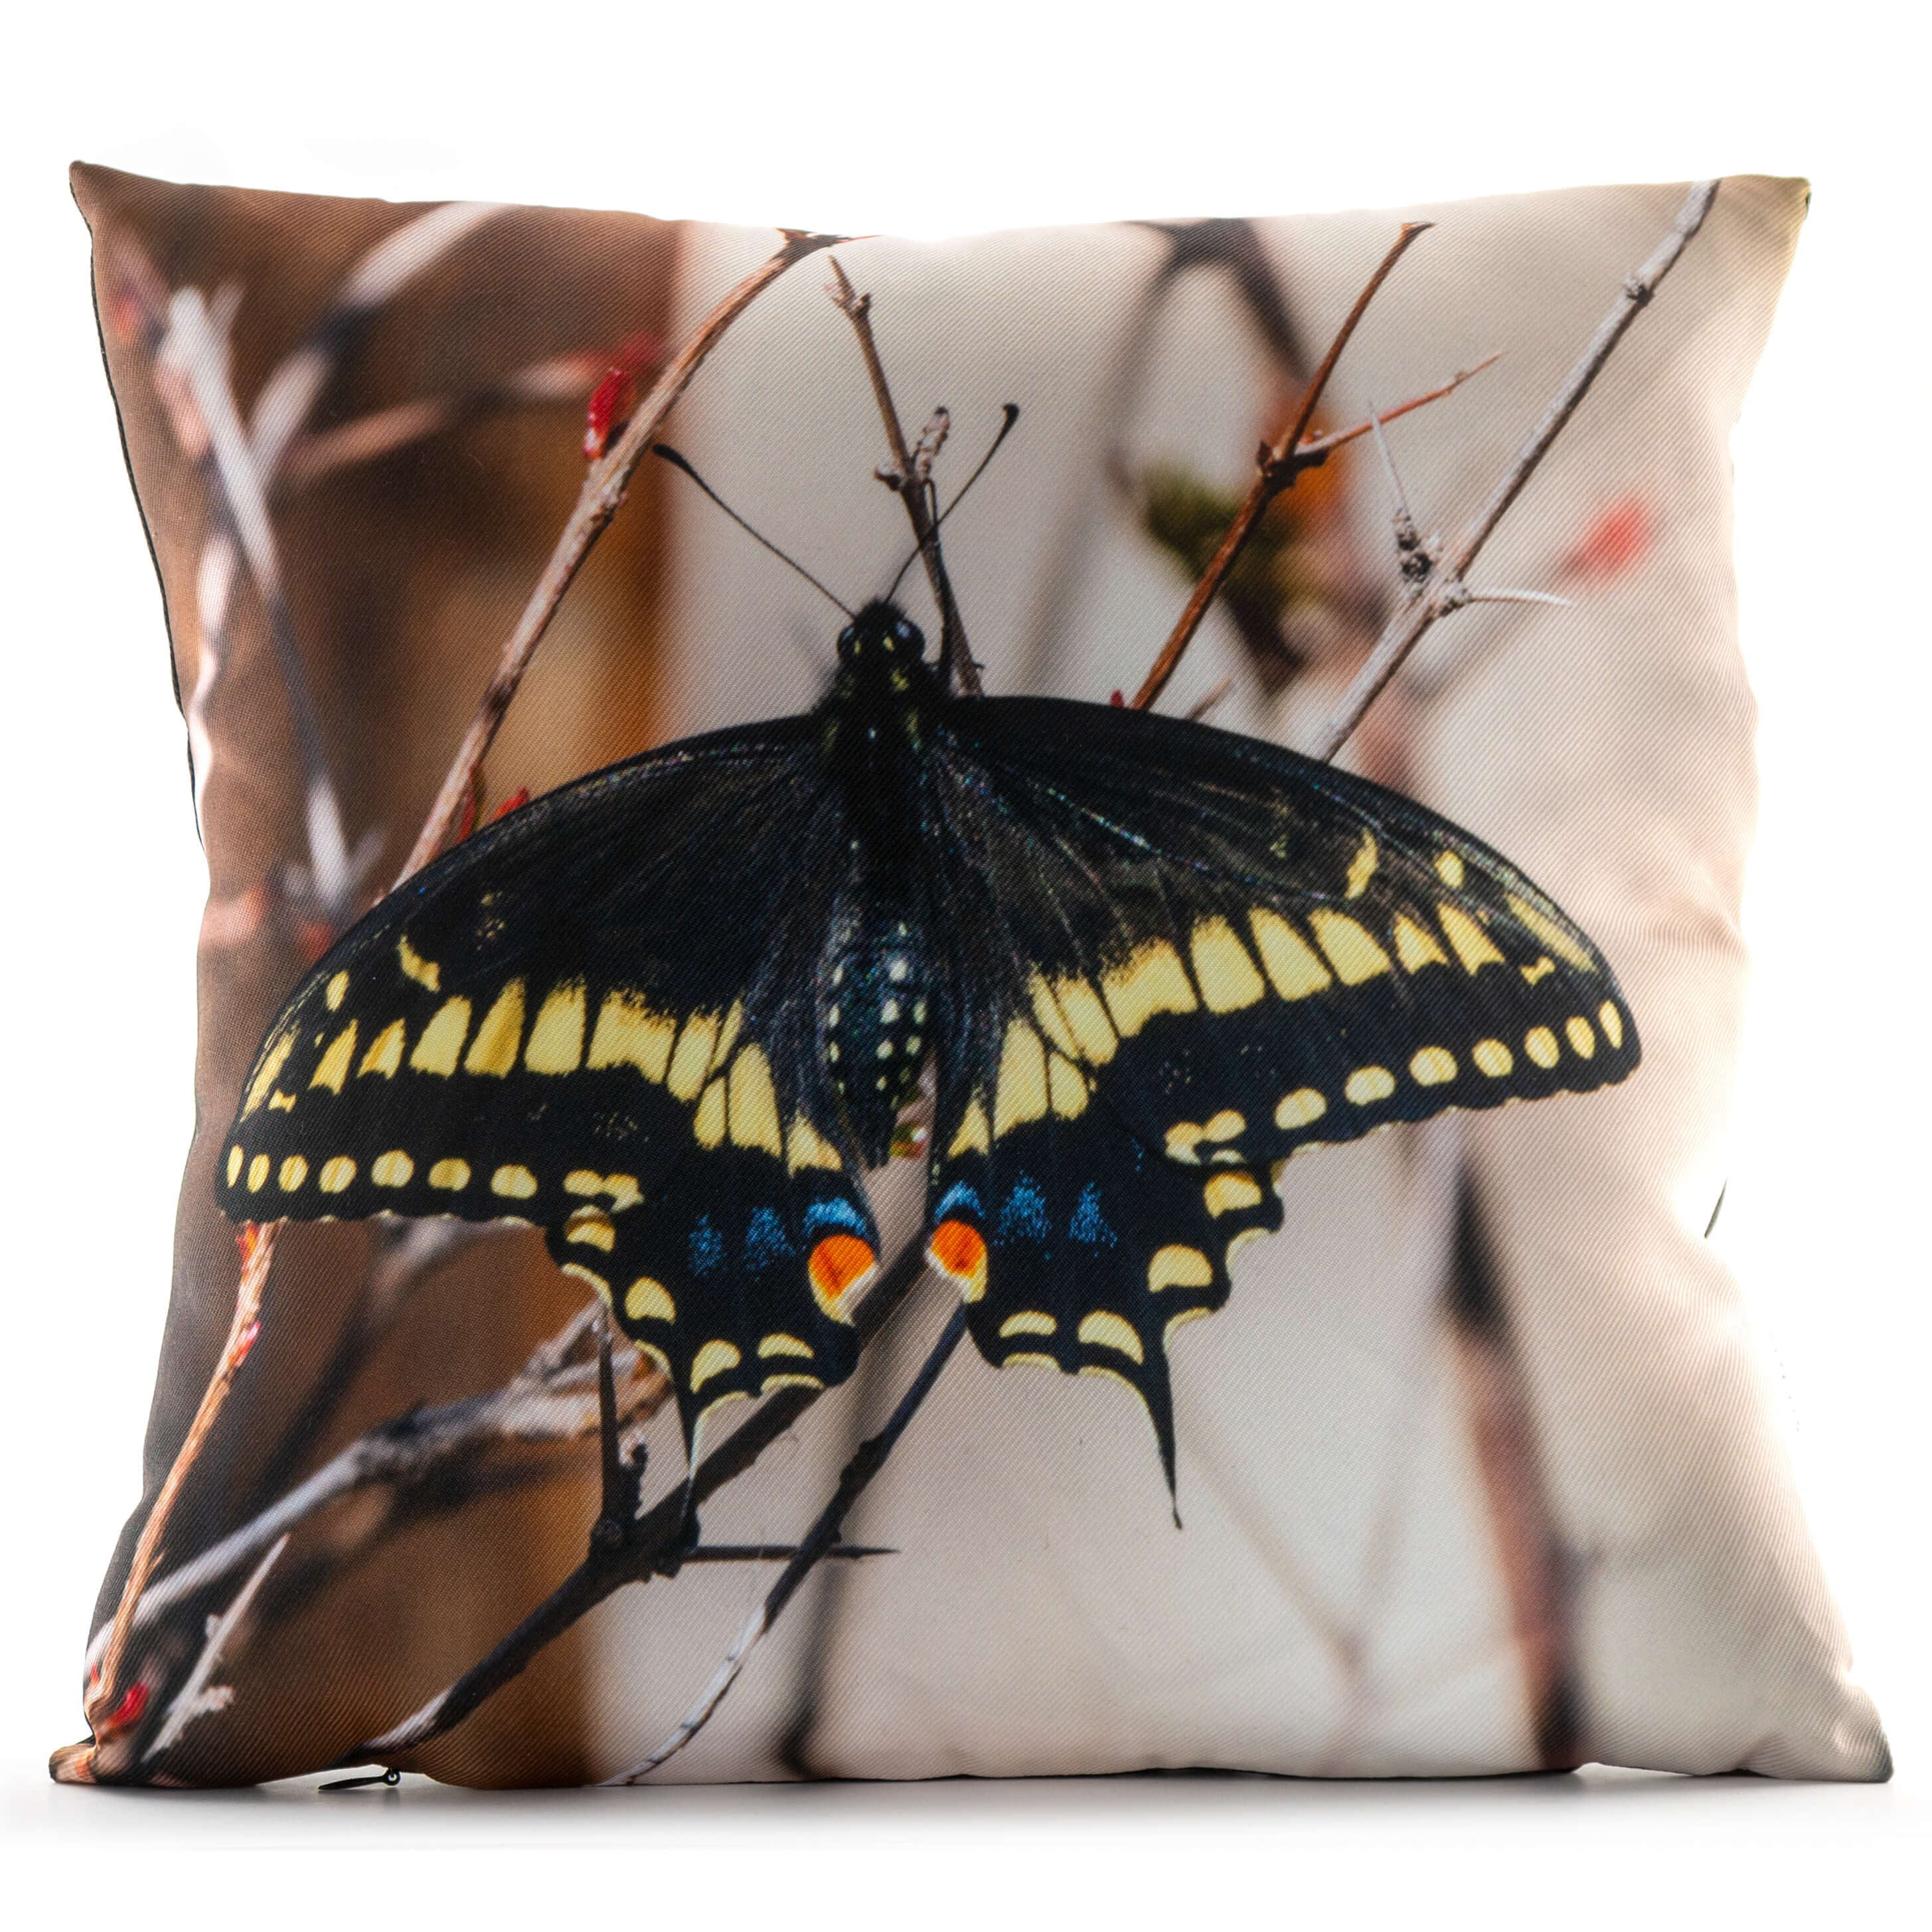 Black Swallowtail Butterfly 14in Throw Pillow